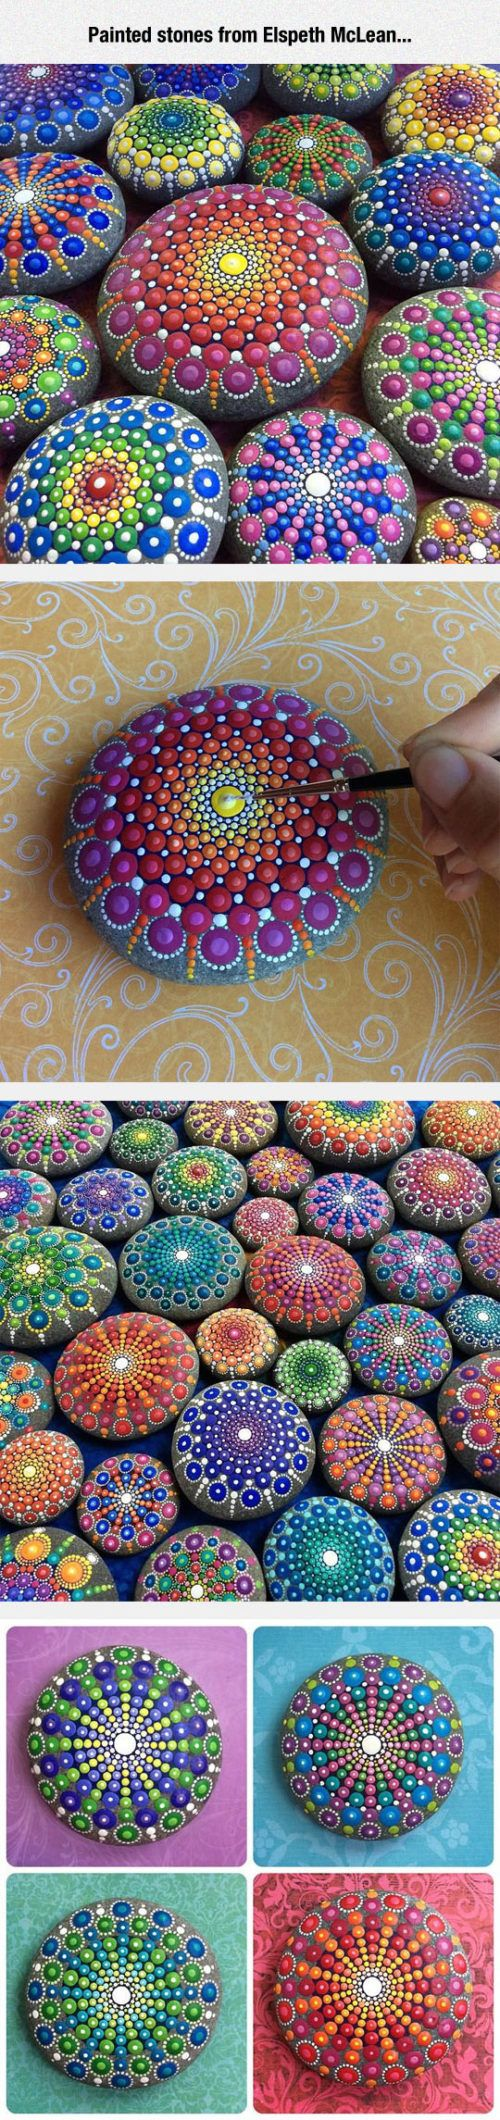 How To Paint Mandala Stones                                                                                                                                                                                 More